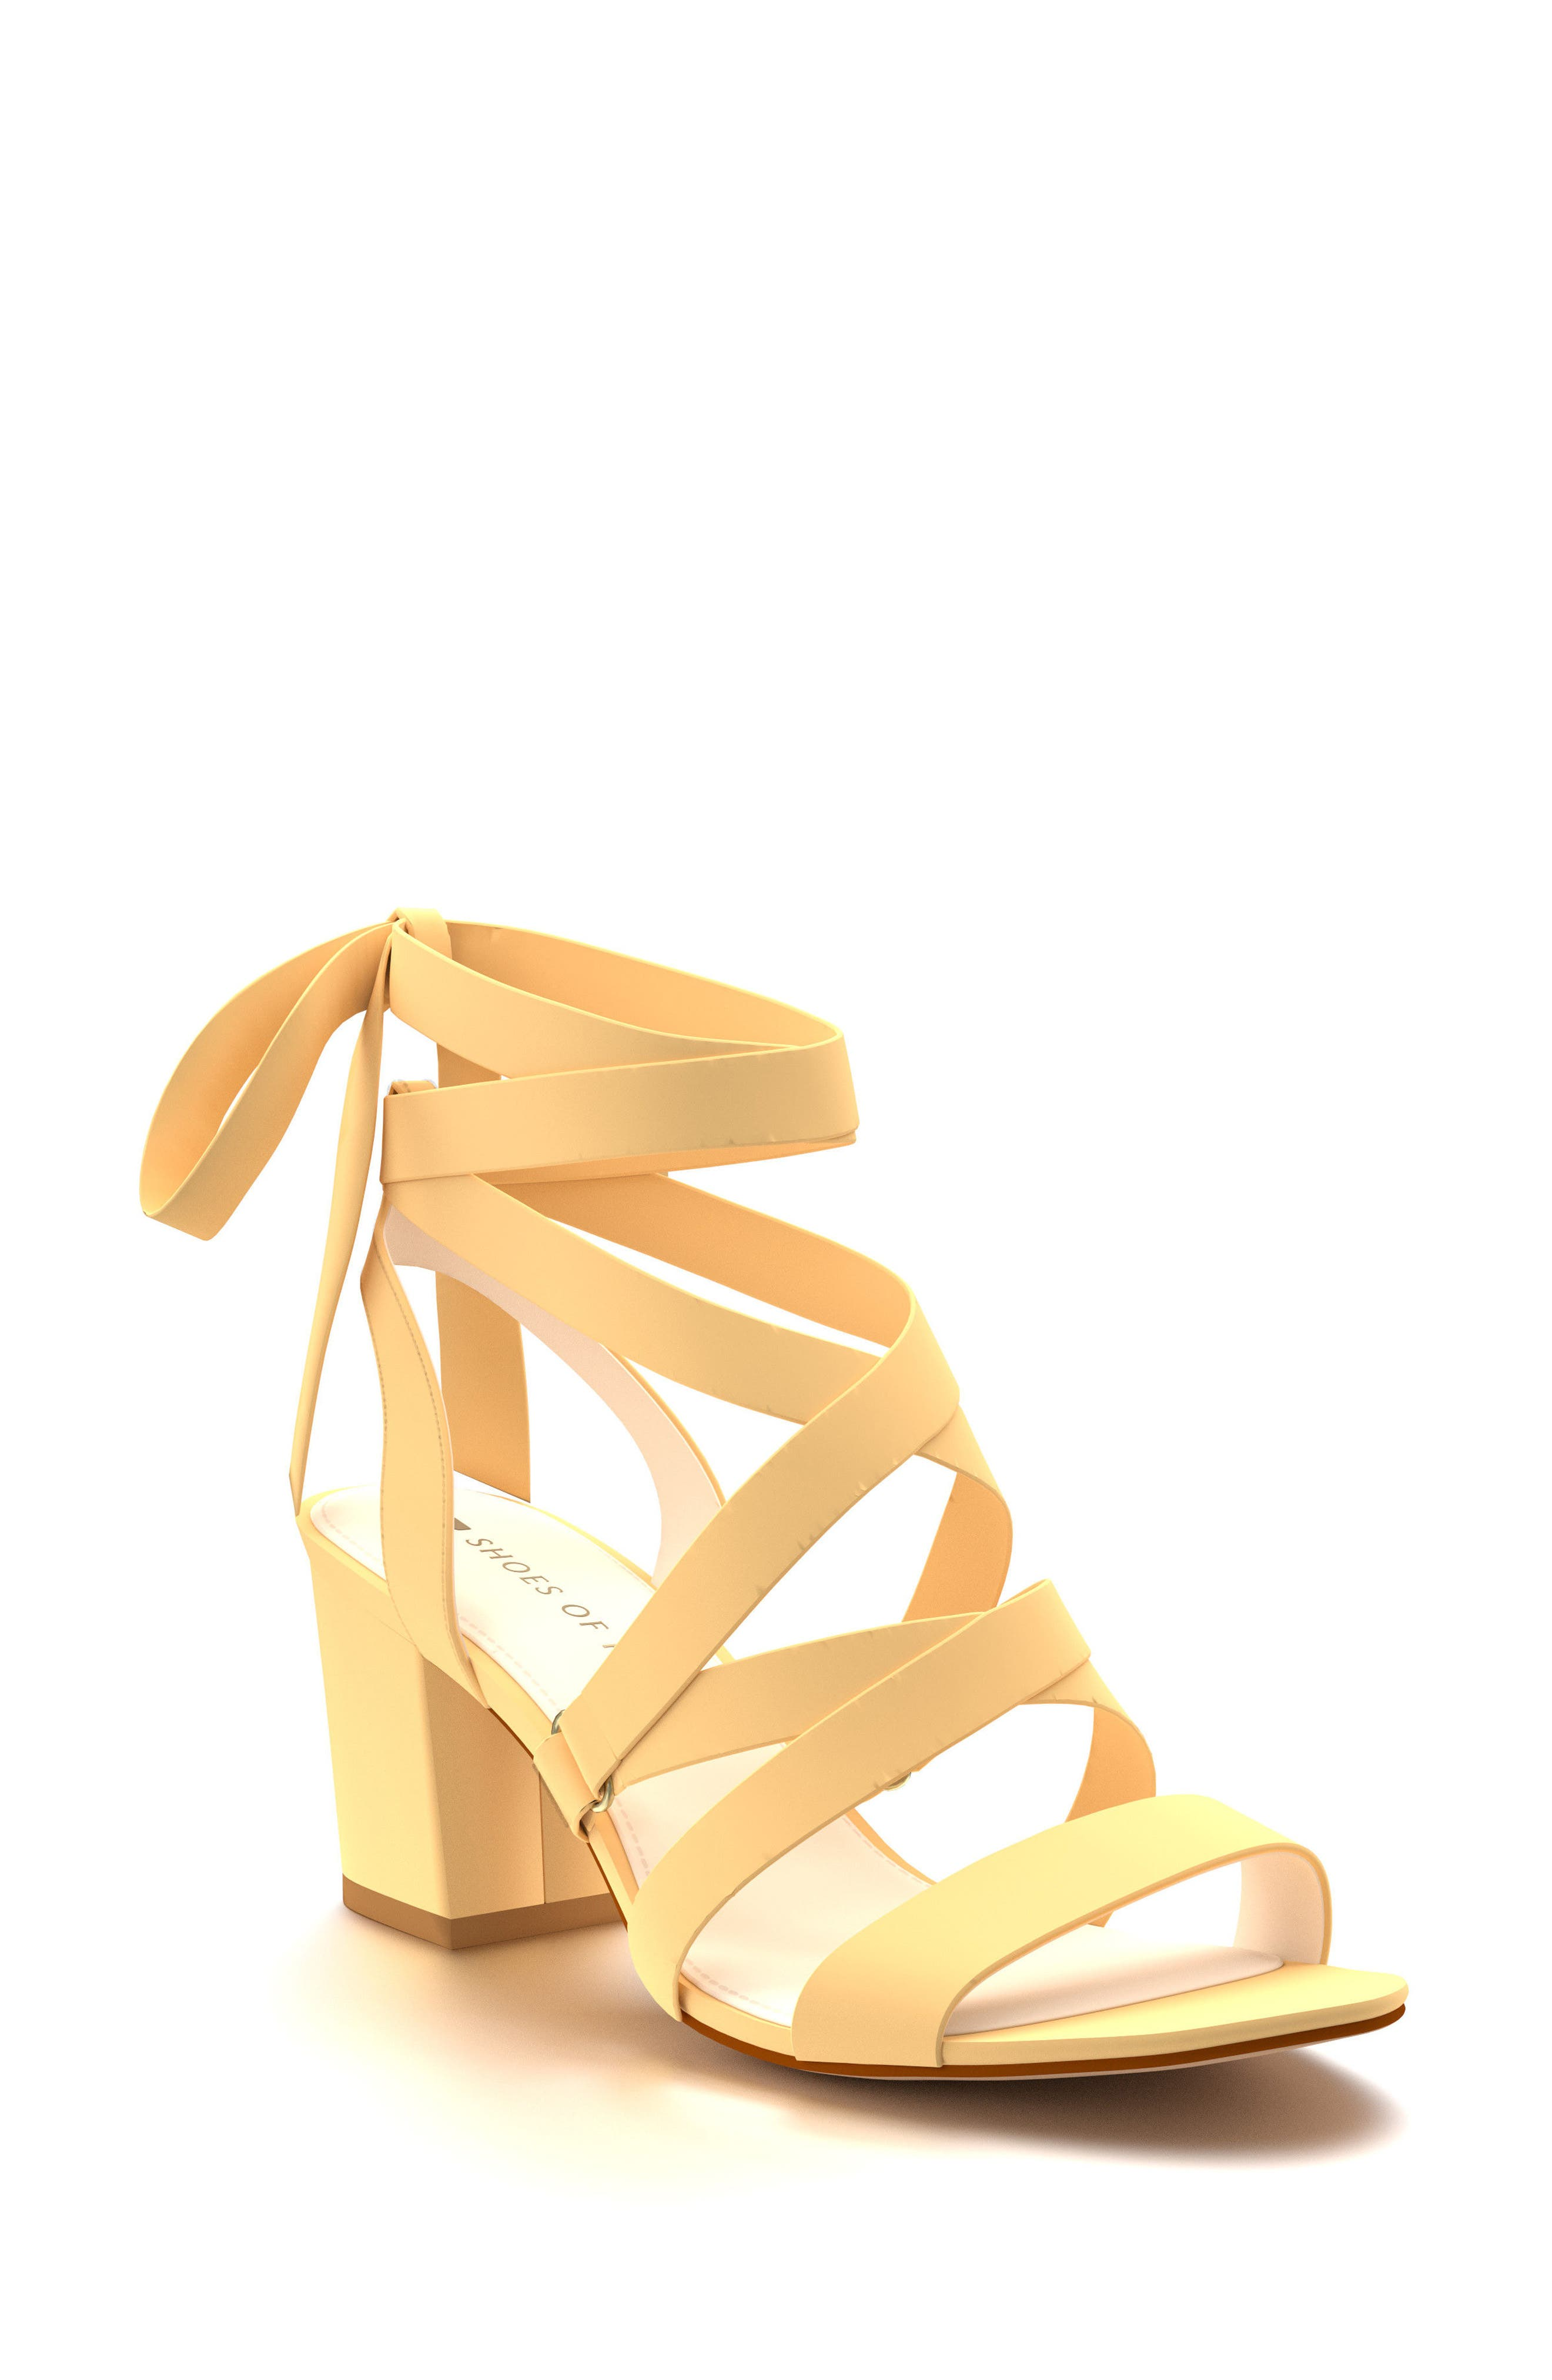 Alternate Image 1 Selected - Shoes of Prey Cross Strap Sandal (Women)